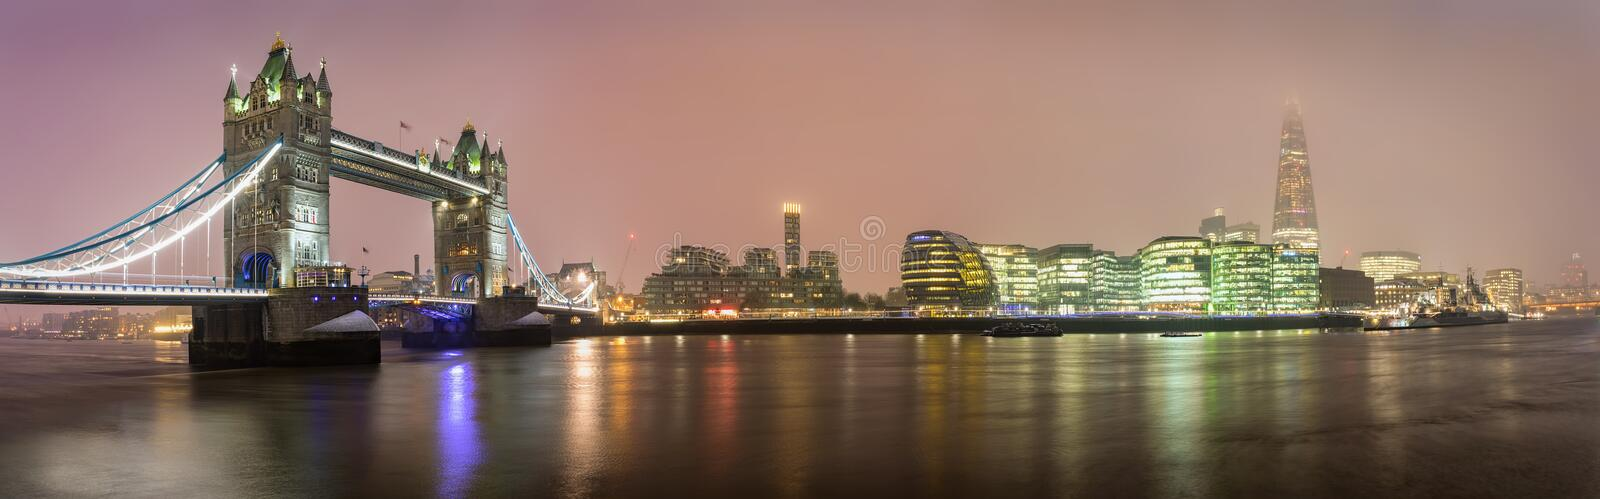 Panoramic view from the Tower Bridge to the London Bridge on a foggy winter night stock photography